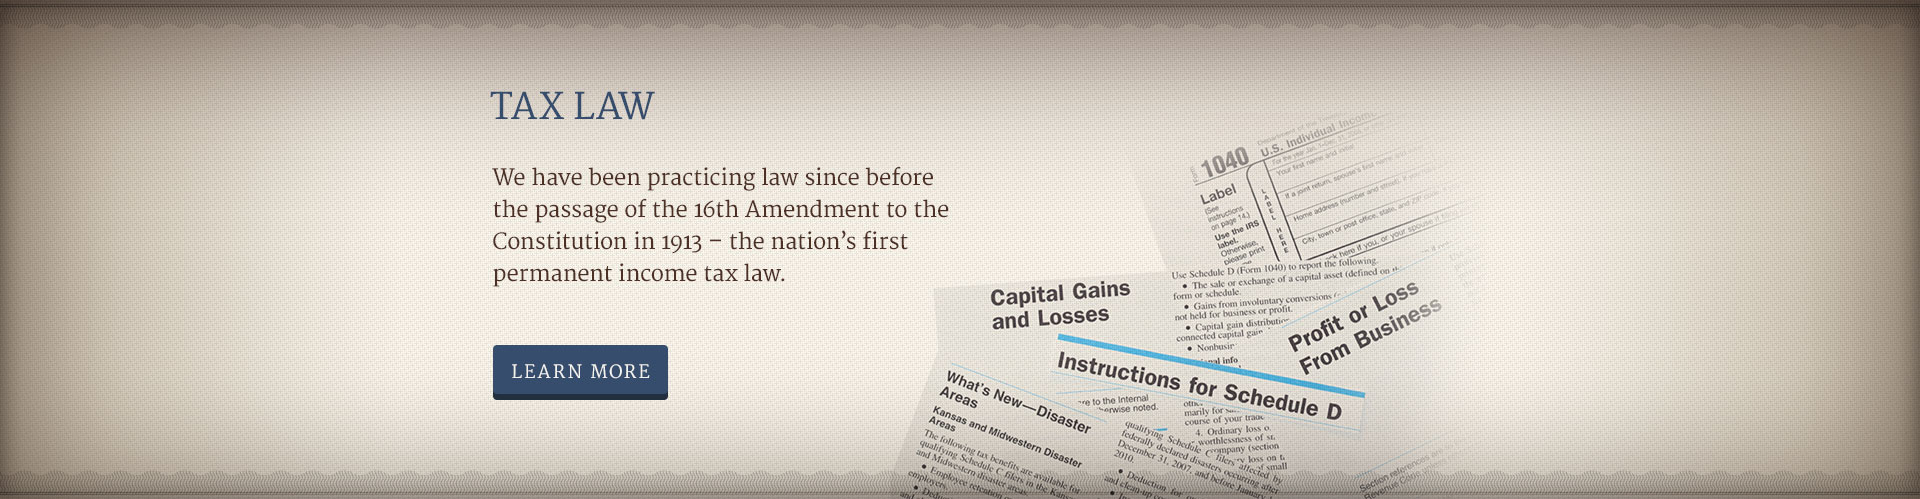 Tax Law - We have been practicing law since before the passage of the 16th Amendment to the Constitution in 1913 – the nation's first permanent income tax law.